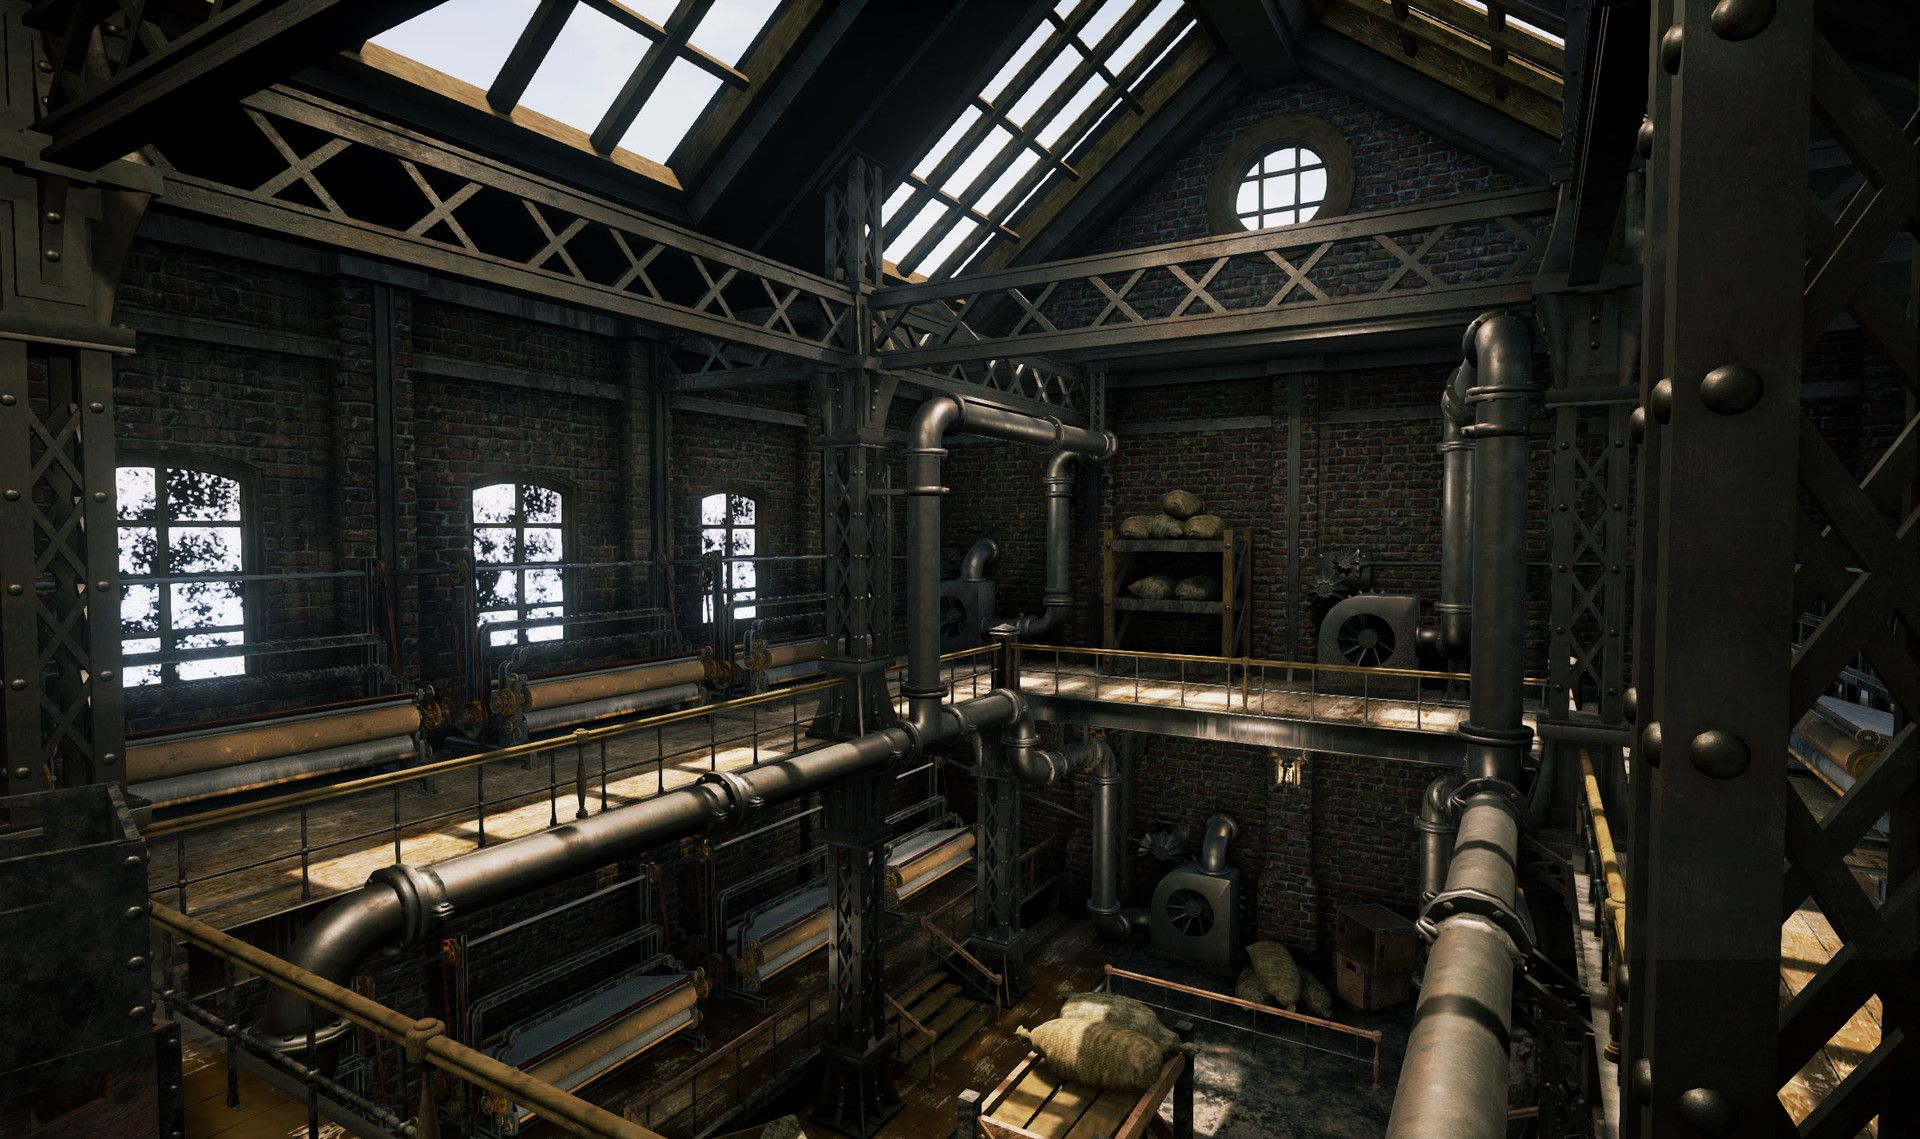 ArtStation - Textile Factory, George Malcov